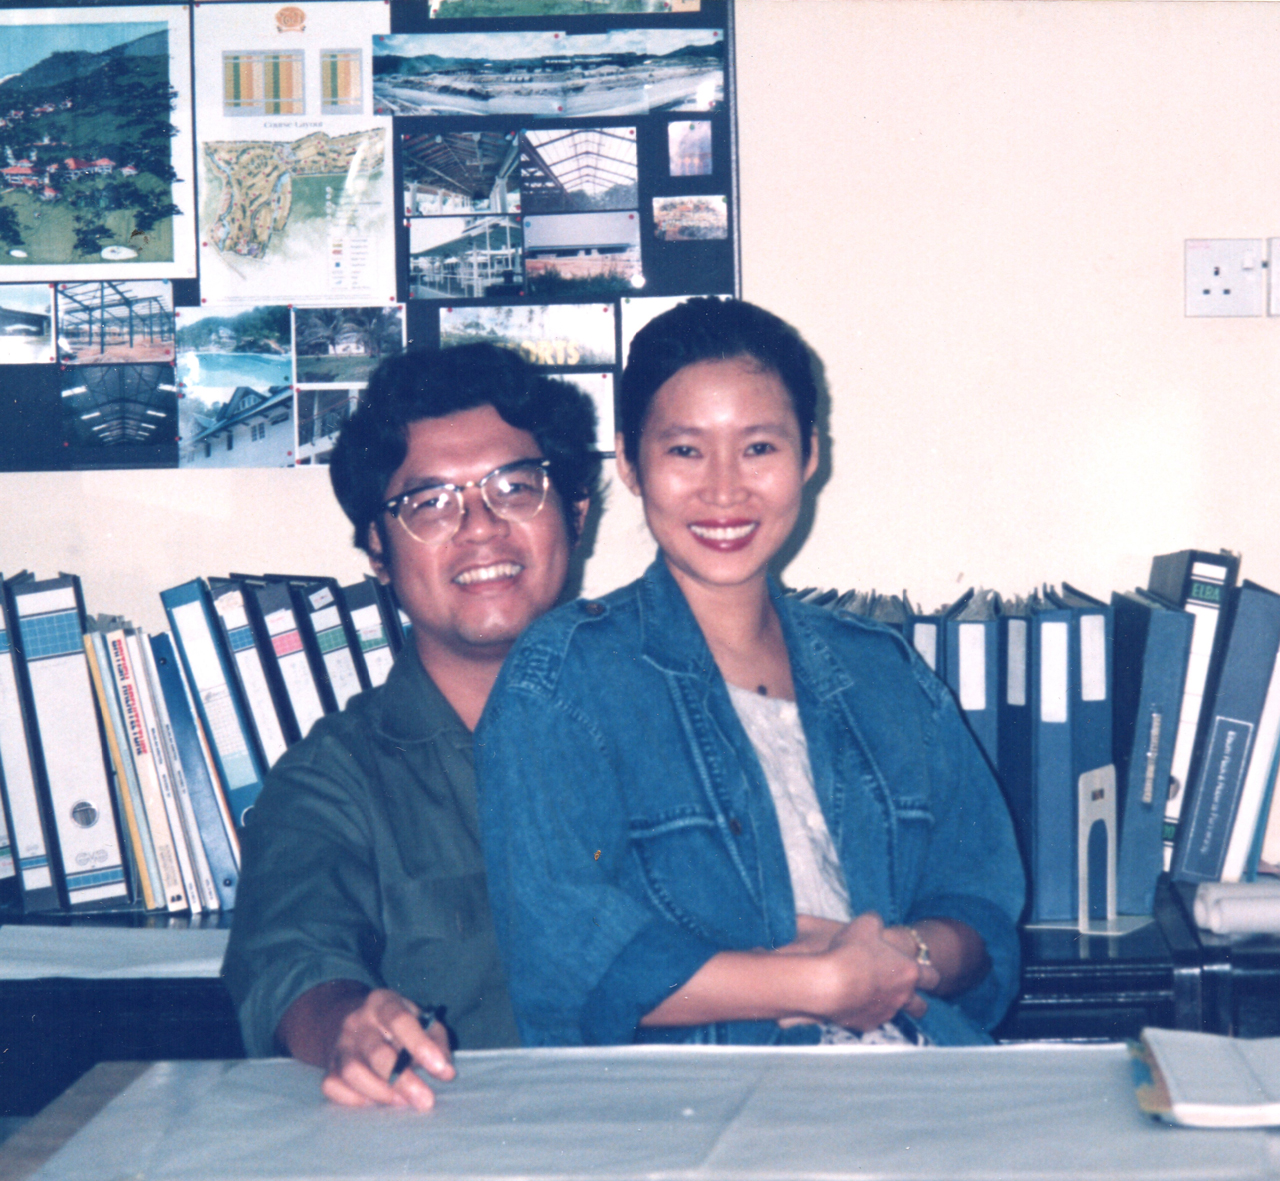 Giap with Bee Bee on my laps in Acromas Akitek Office. Acromas Akitek Days: 1988-1996 Glorious Years.. Image size:1280x1181px